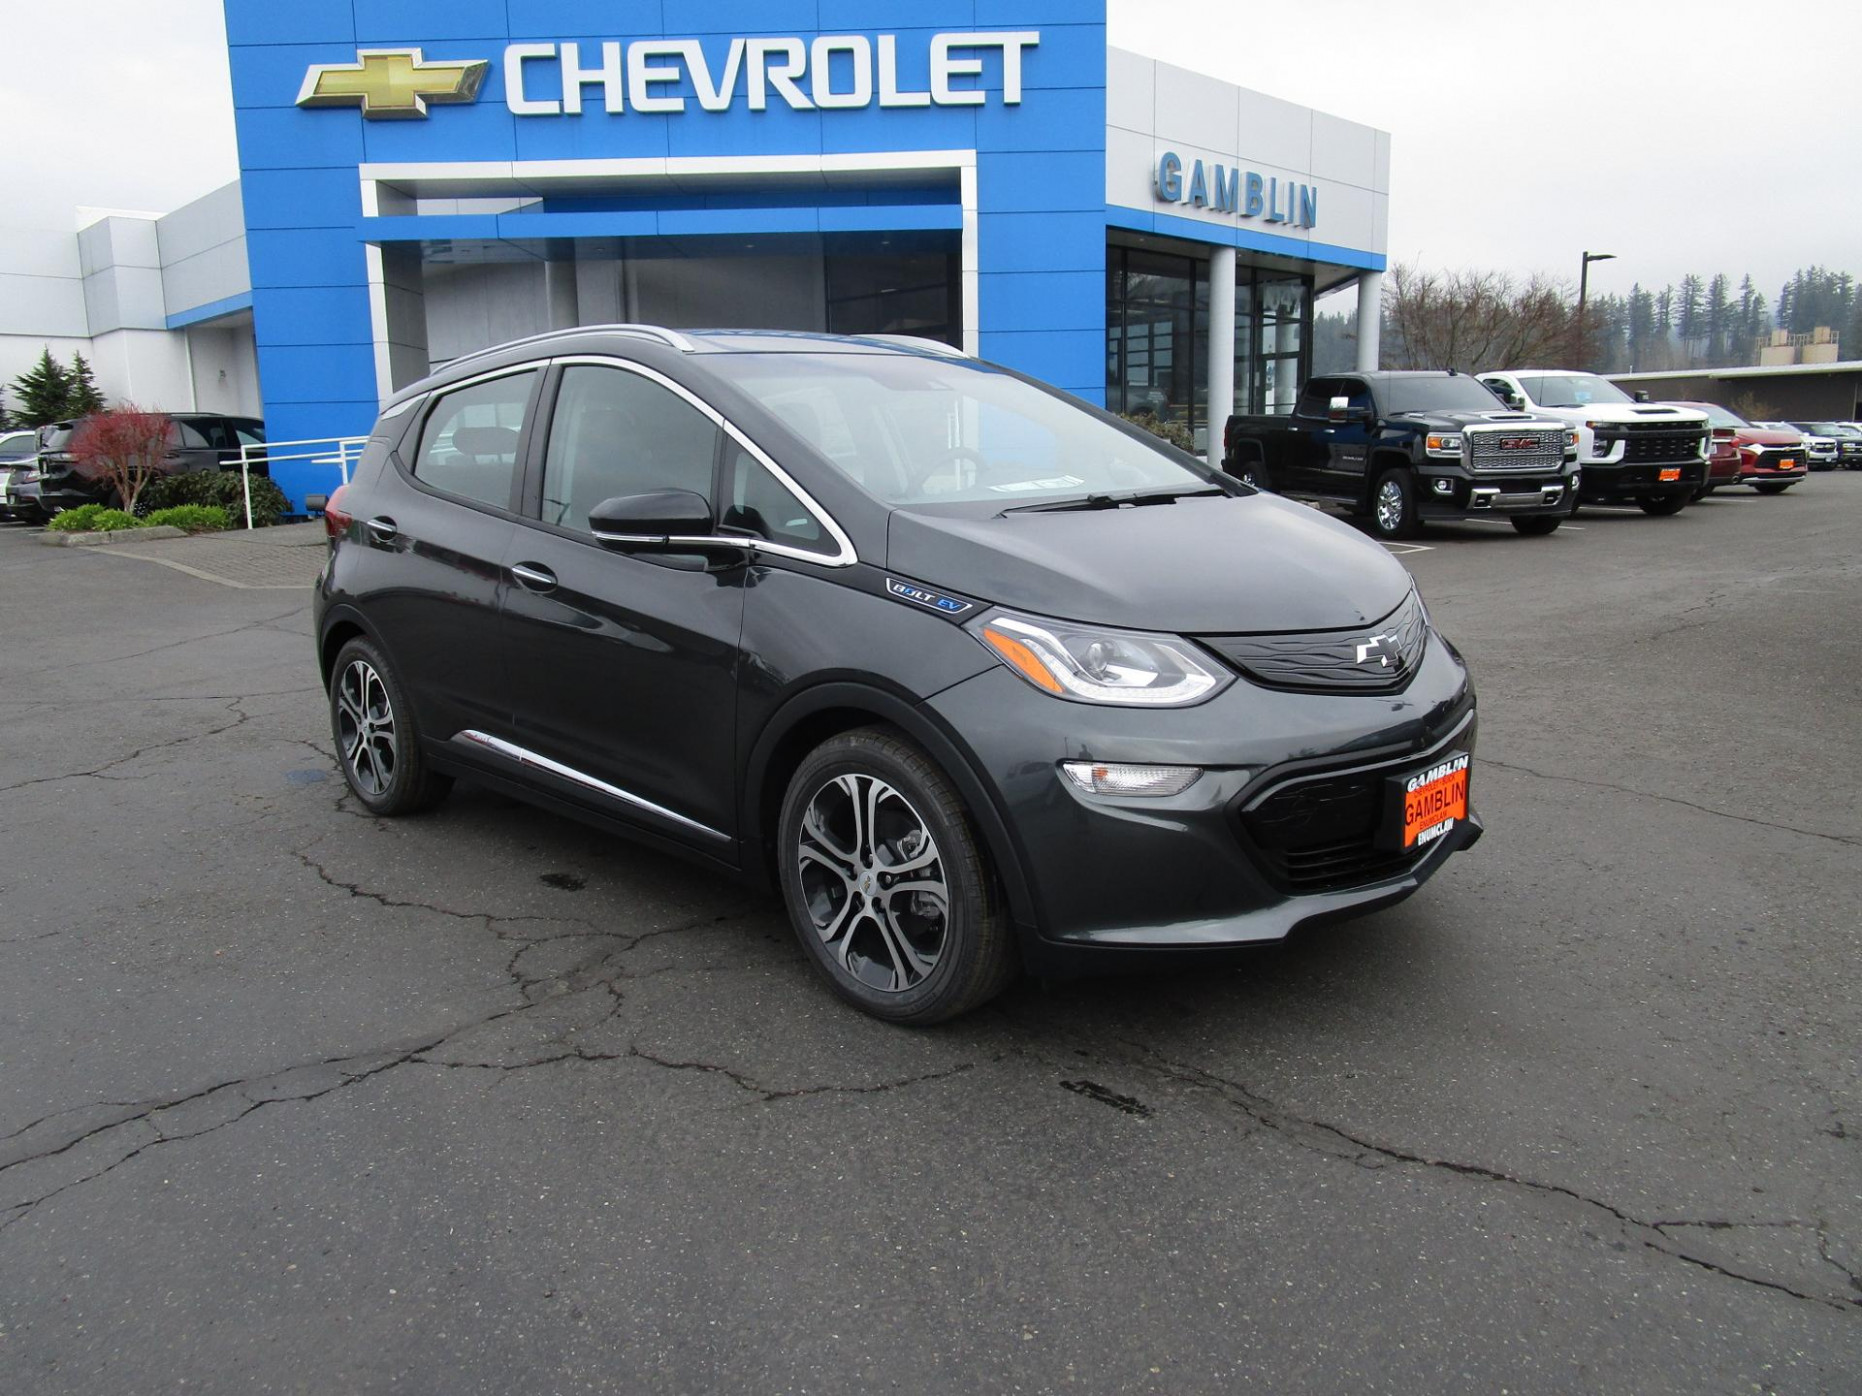 9 Chevrolet Bolt EV for sale in Enumclaw ..